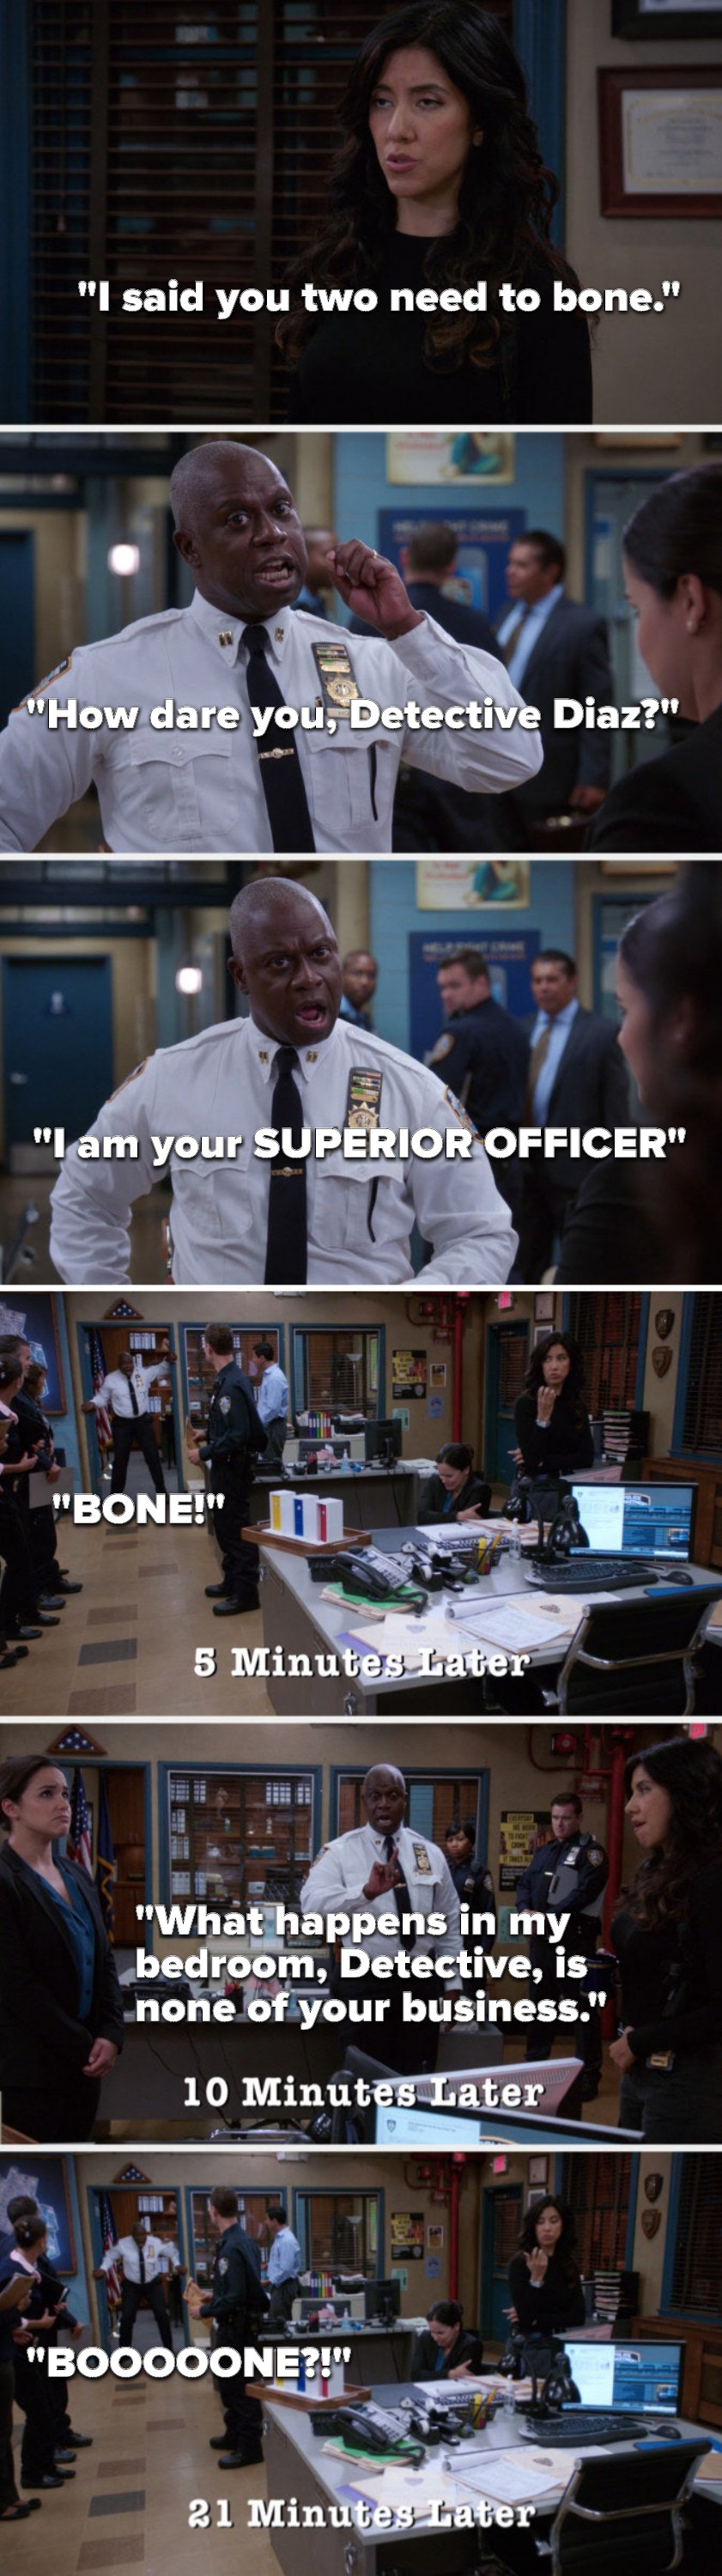 """Rosa says, """"I said you two need to bone,"""" Holt says, """"How dare you, I am your SUPERIOR OFFICER,"""" 5 minutes later Holt yells, """"BONE,"""" 10 minutes later he says, """"What happens in my bedroom, is none of your business,"""" 21 minutes later he yells, """"BOOOOONE"""""""